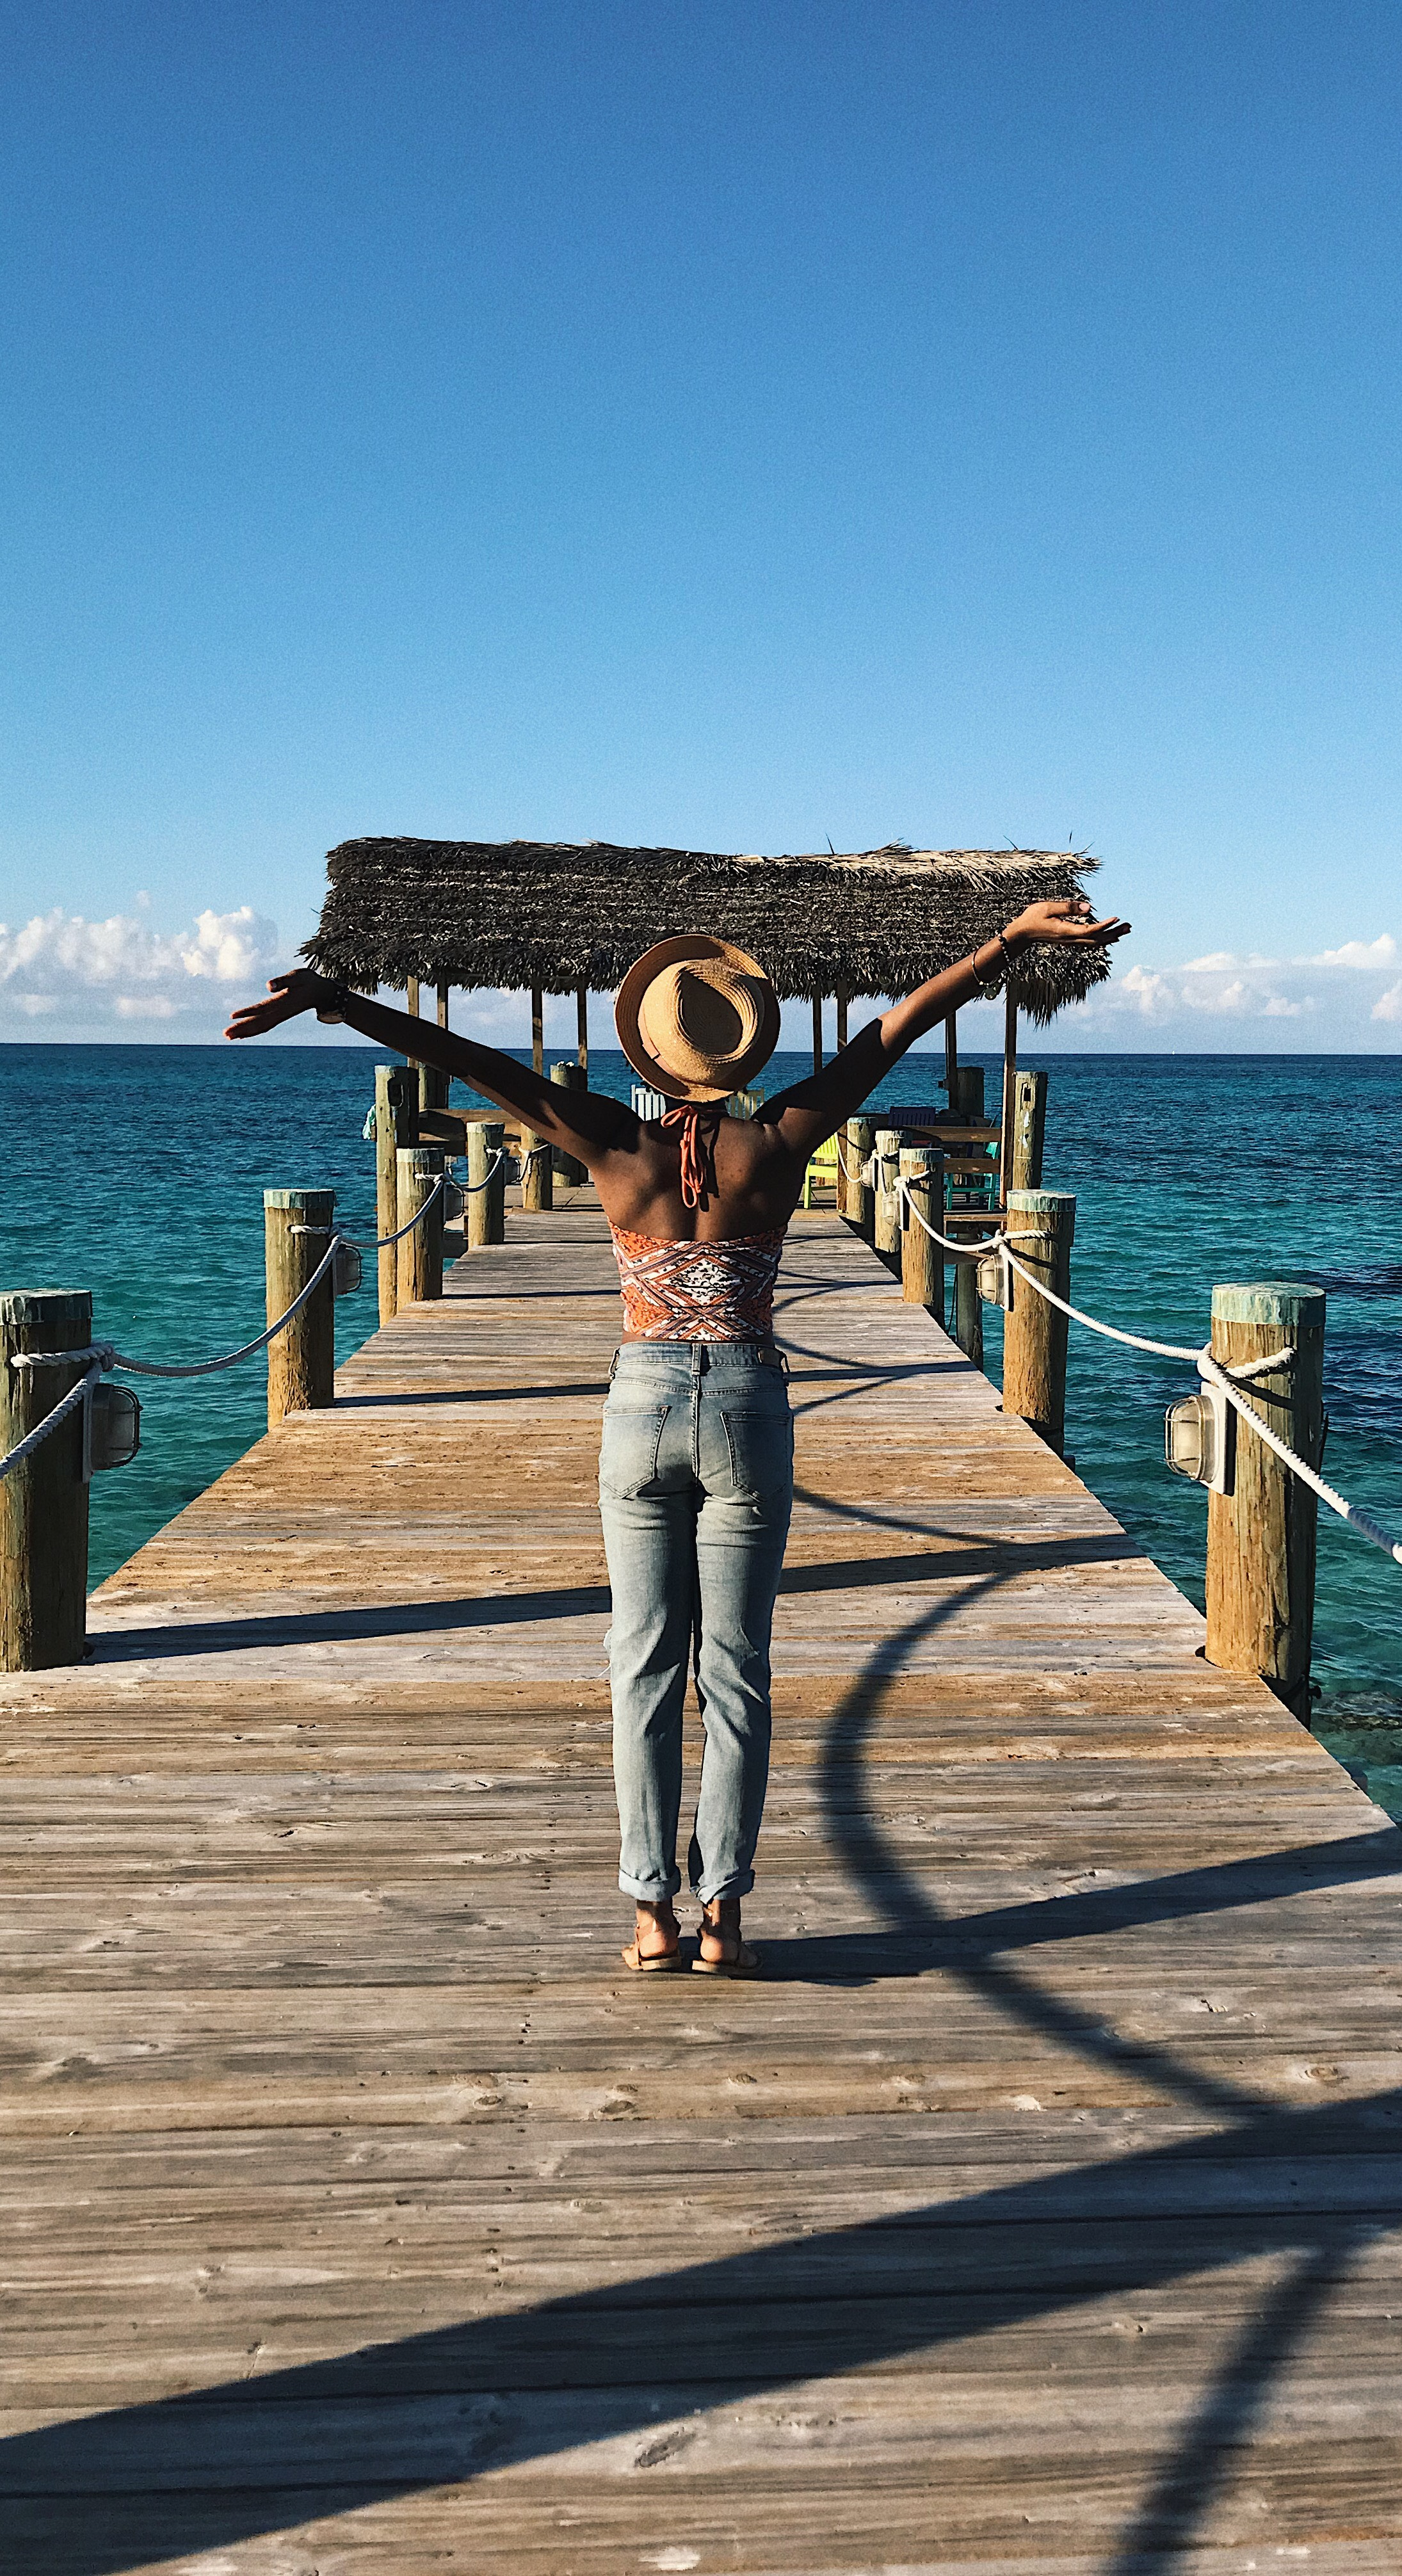 A picture of me in the Bahamas